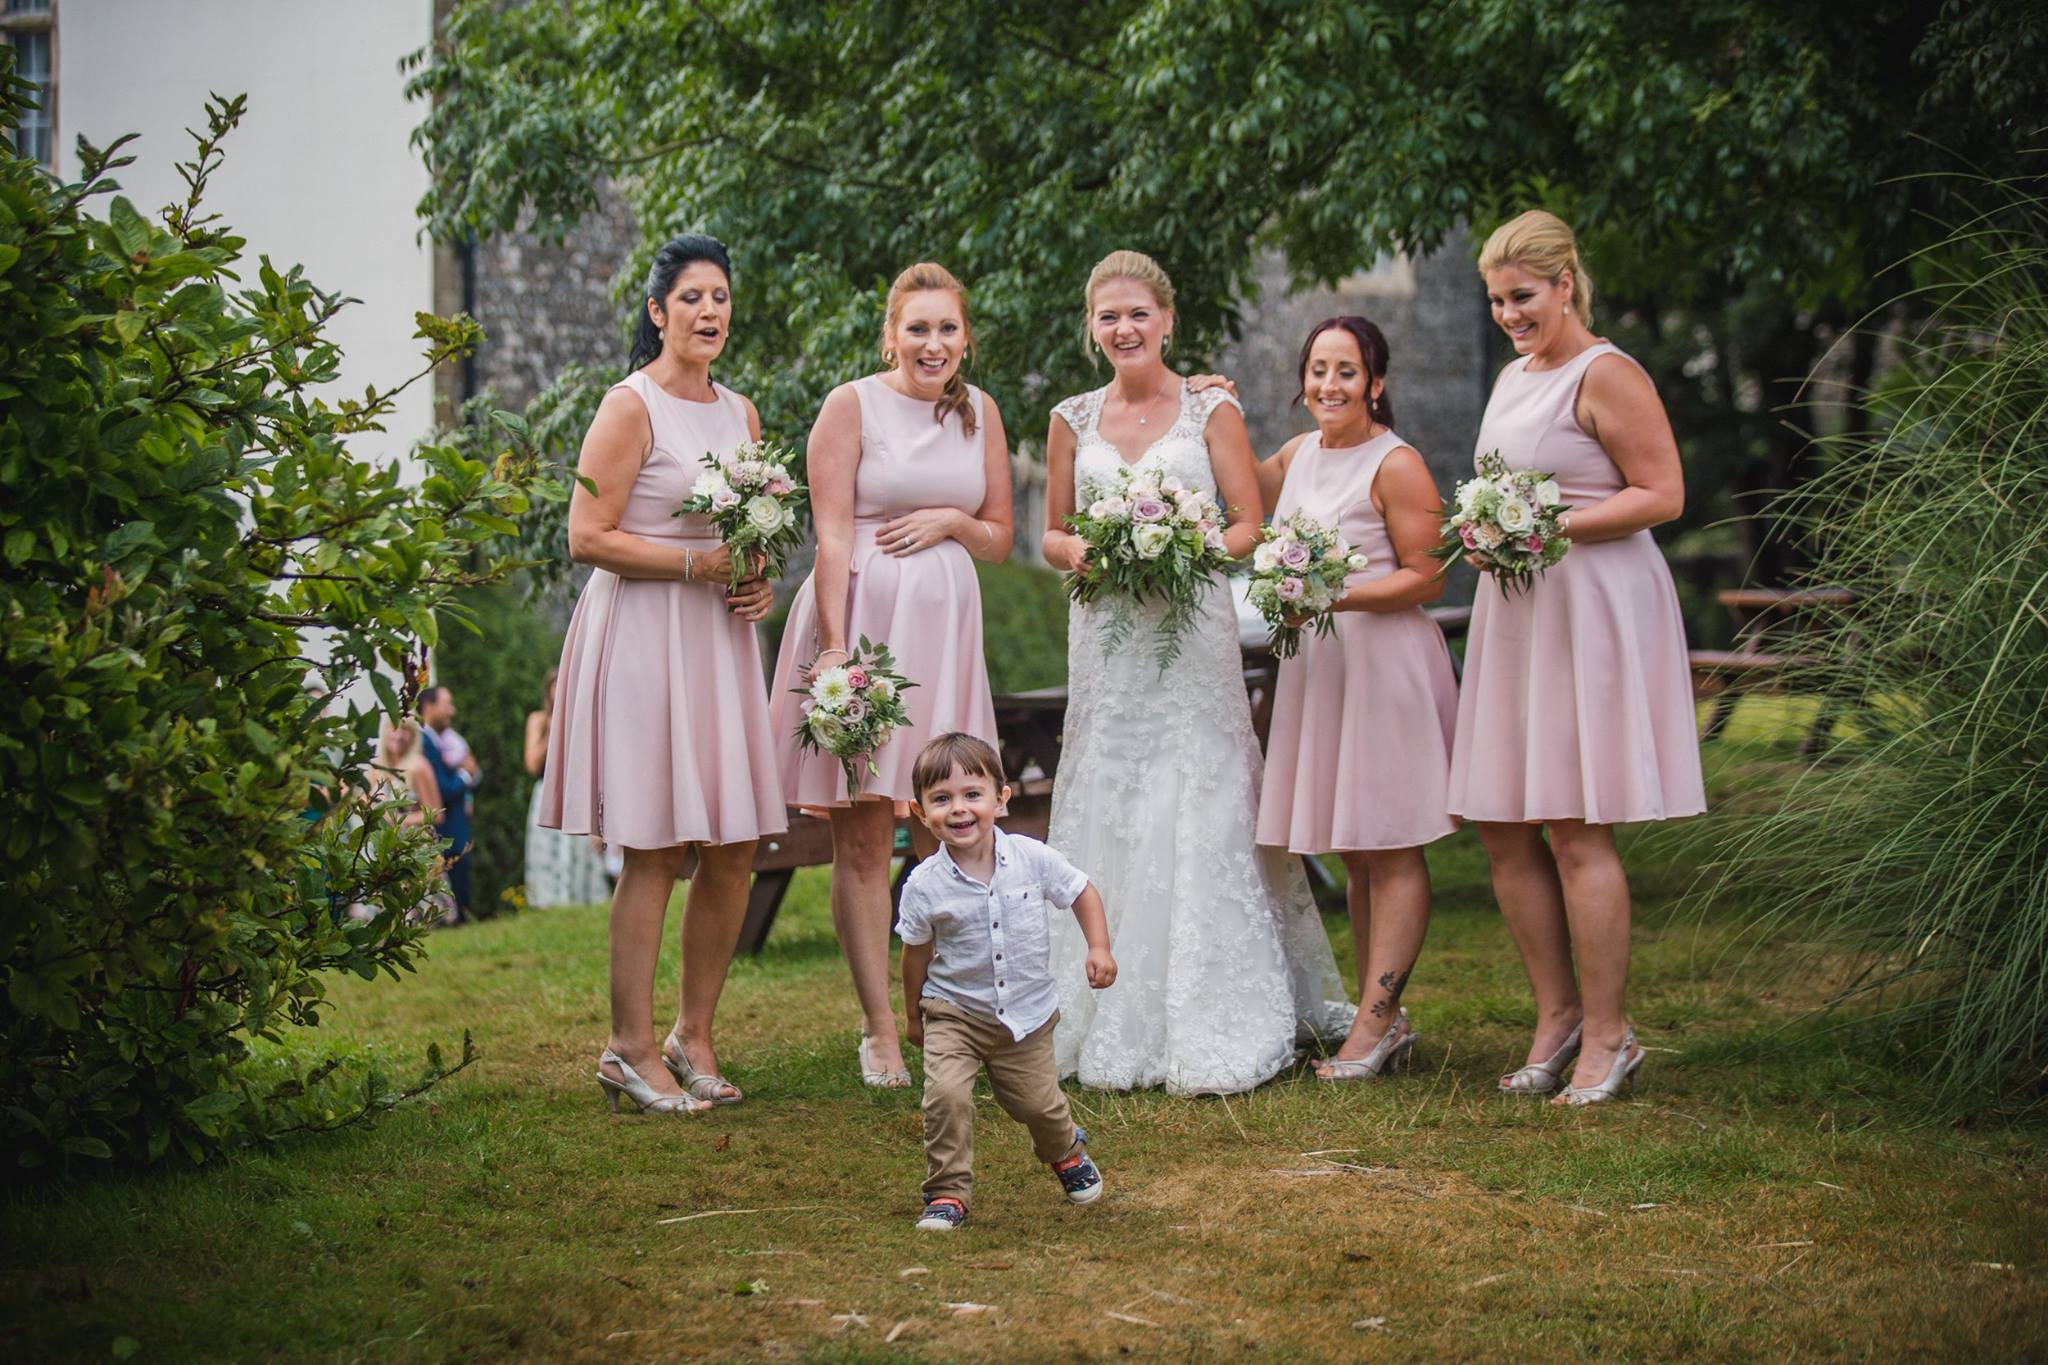 blush bridesmaids dresses and flowers